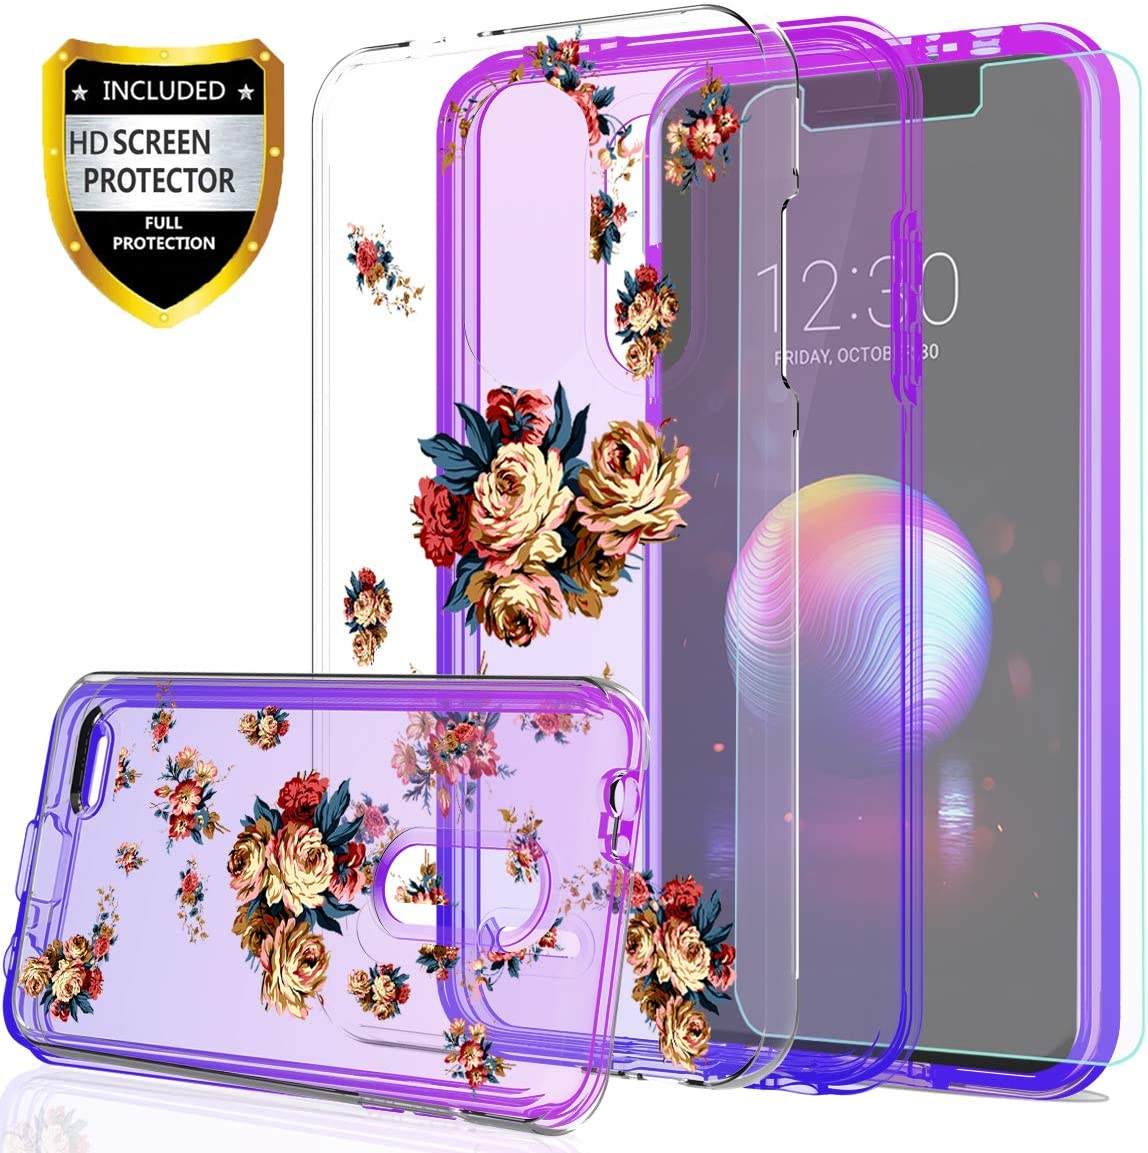 LG K30 Phone Case,LG Harmony 2/LG Phoenix Plus/Premier Pro Case for Girls,with HD Screen Protector,YmhxcY[Hard PC Back Flower and TPU Two-color gradient]Protective Cover For LG K10 2018-GC Purple/Blue